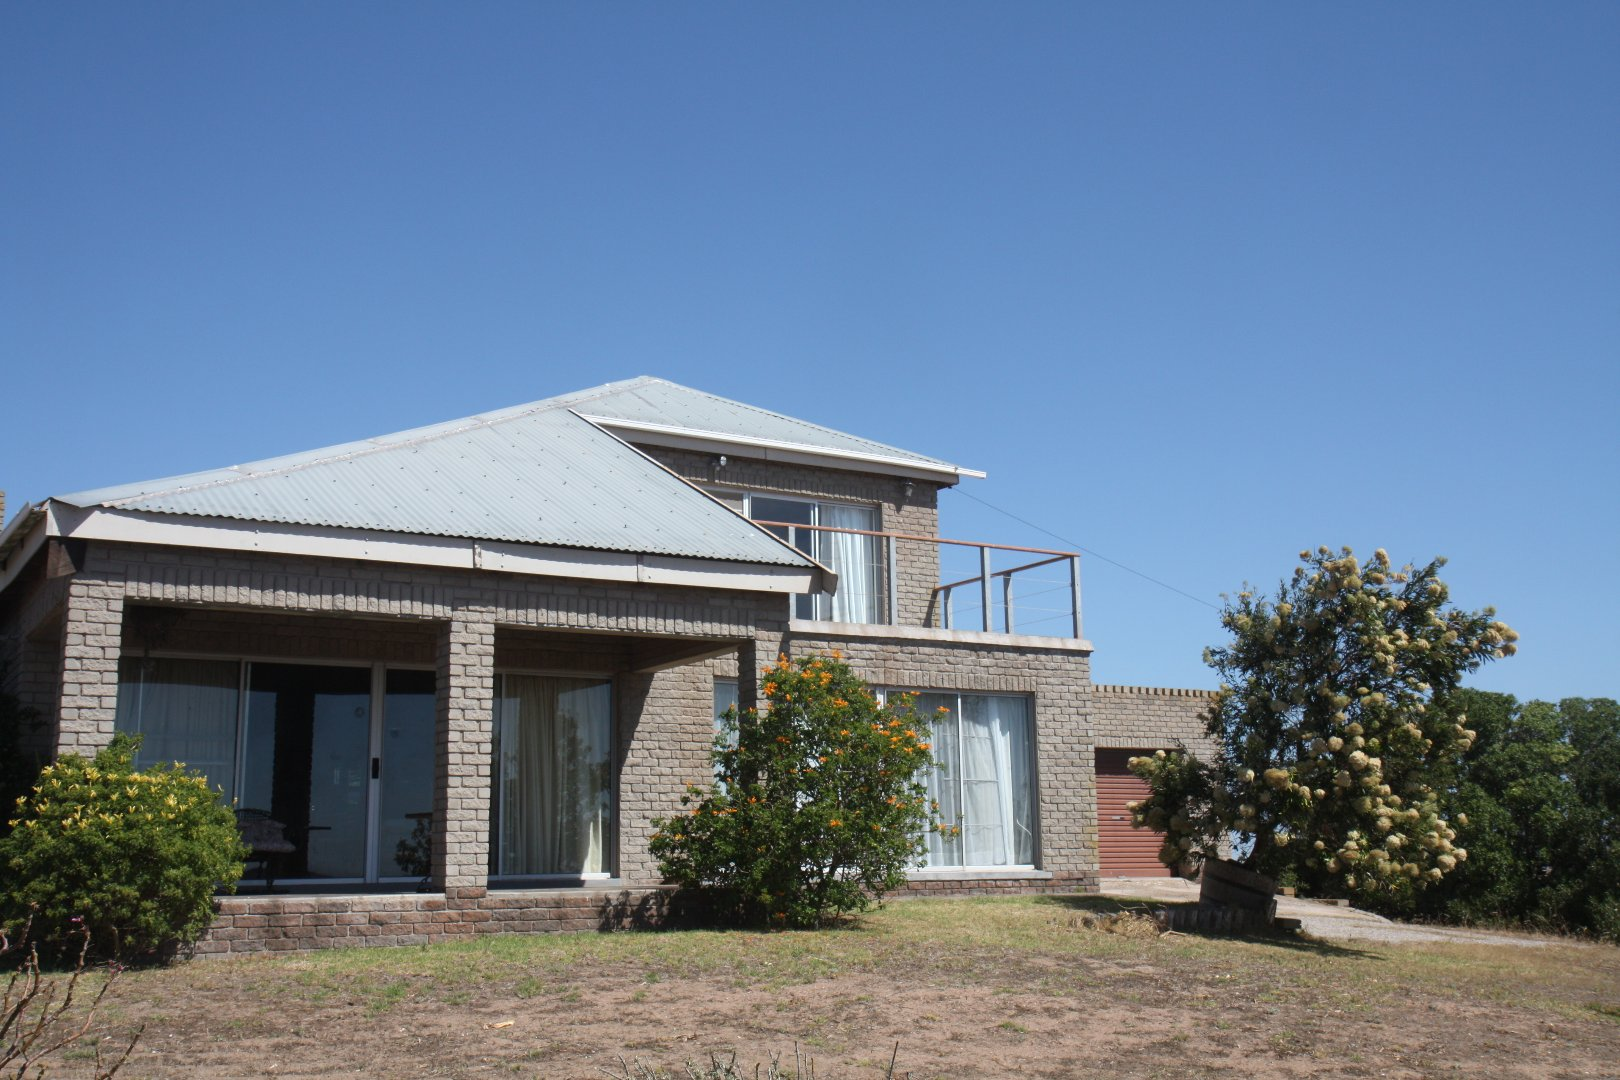 Property and Houses for sale in Trekoskraal, Farms, 3 Bedrooms - ZAR 2,310,000